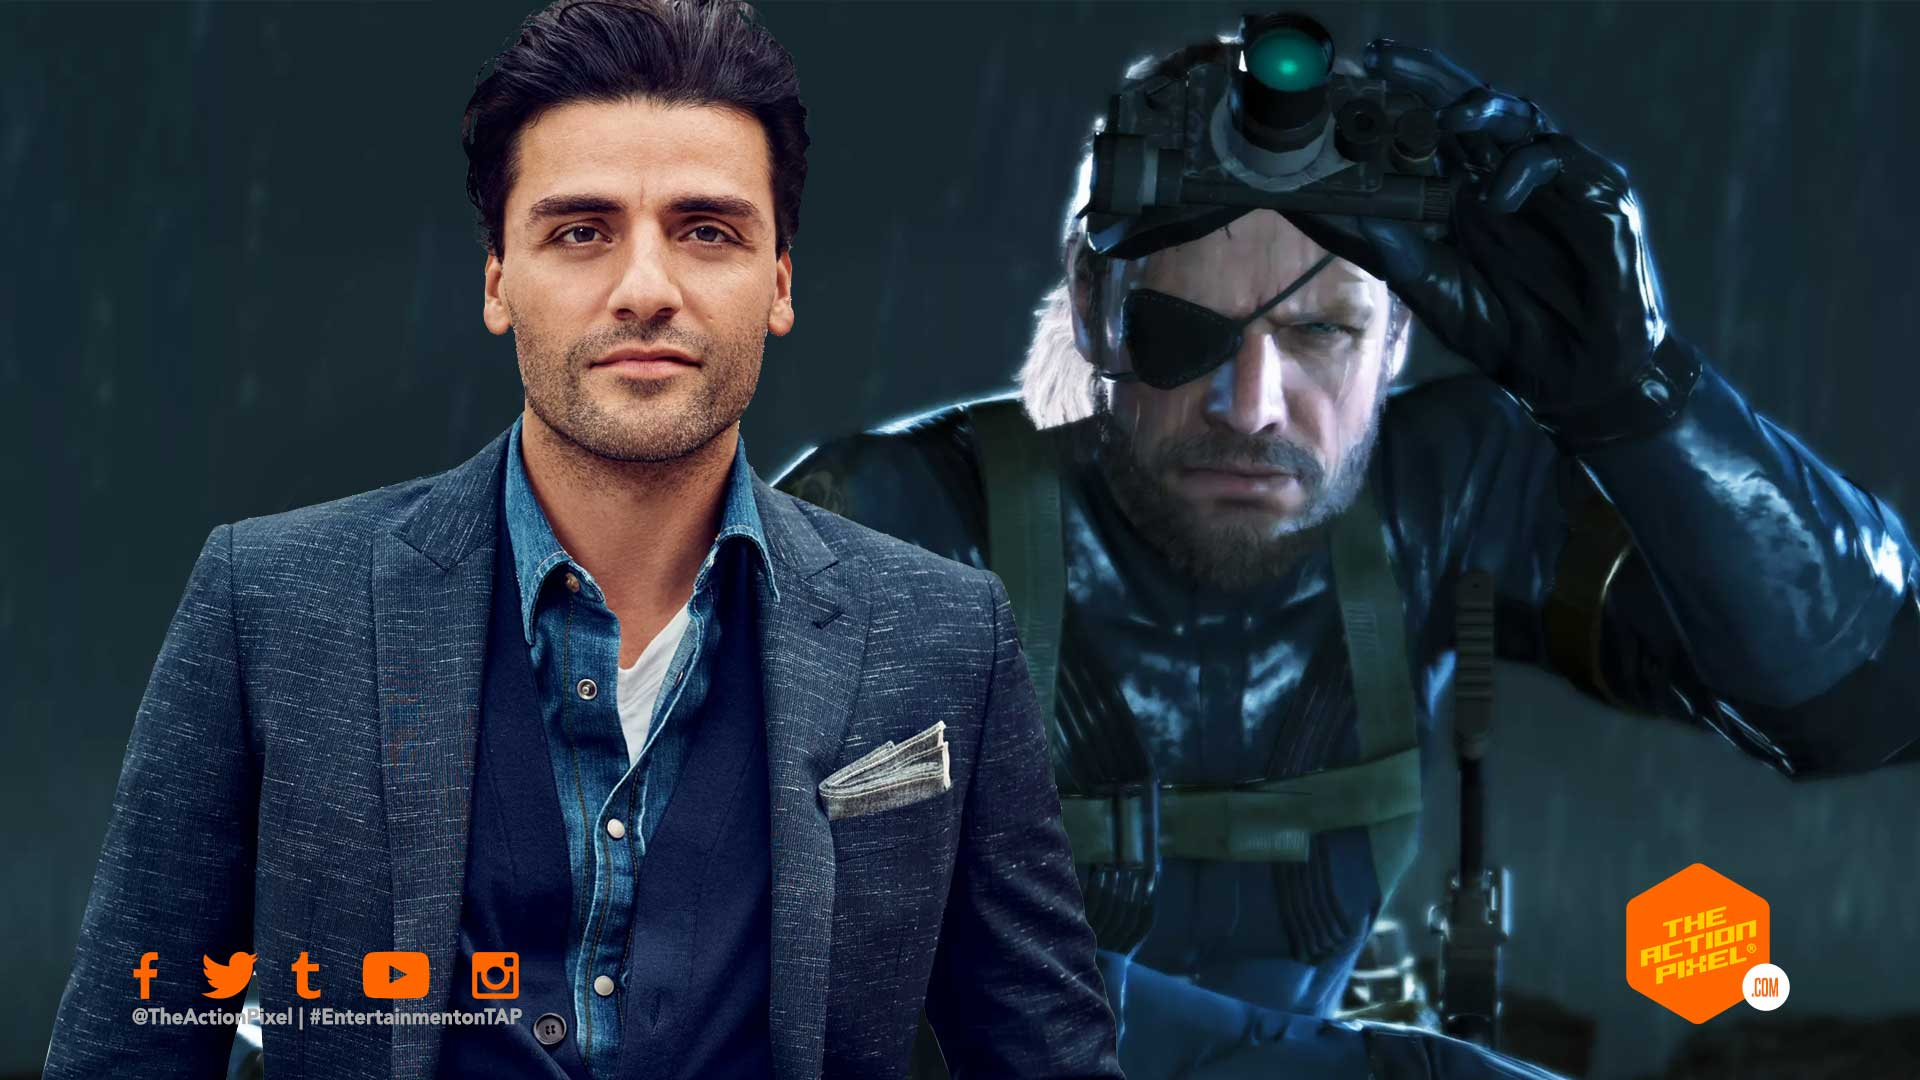 oscar isaac, metal gear solid, the action pixel, featured, konami, hideo kojima, metal gear solid movie, solid snake, metal gear solid casting